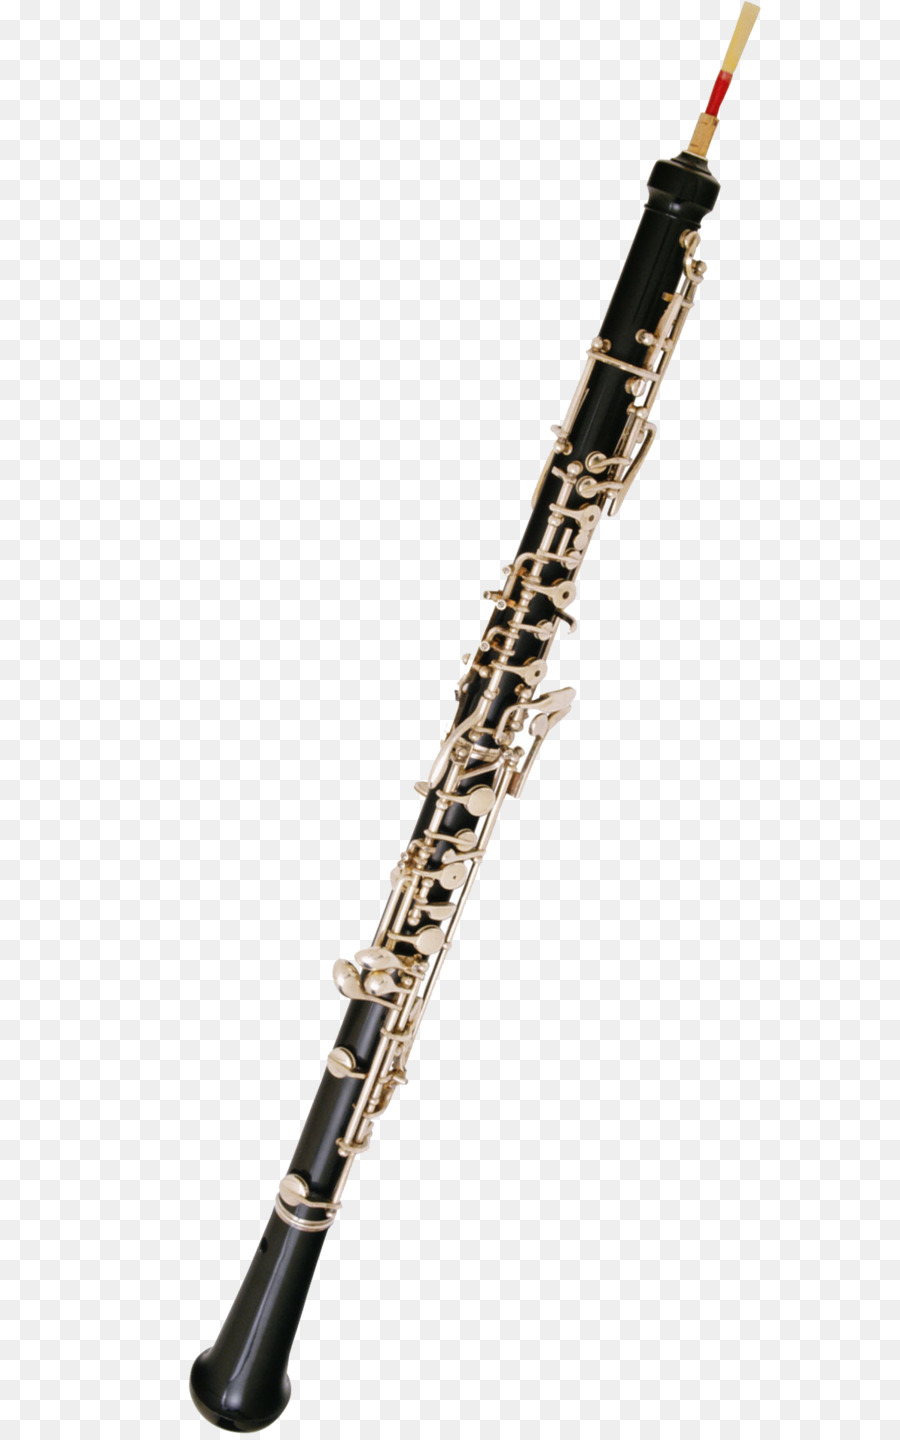 Oboe clipart png Oboe clipart 6 » Clipart Station png